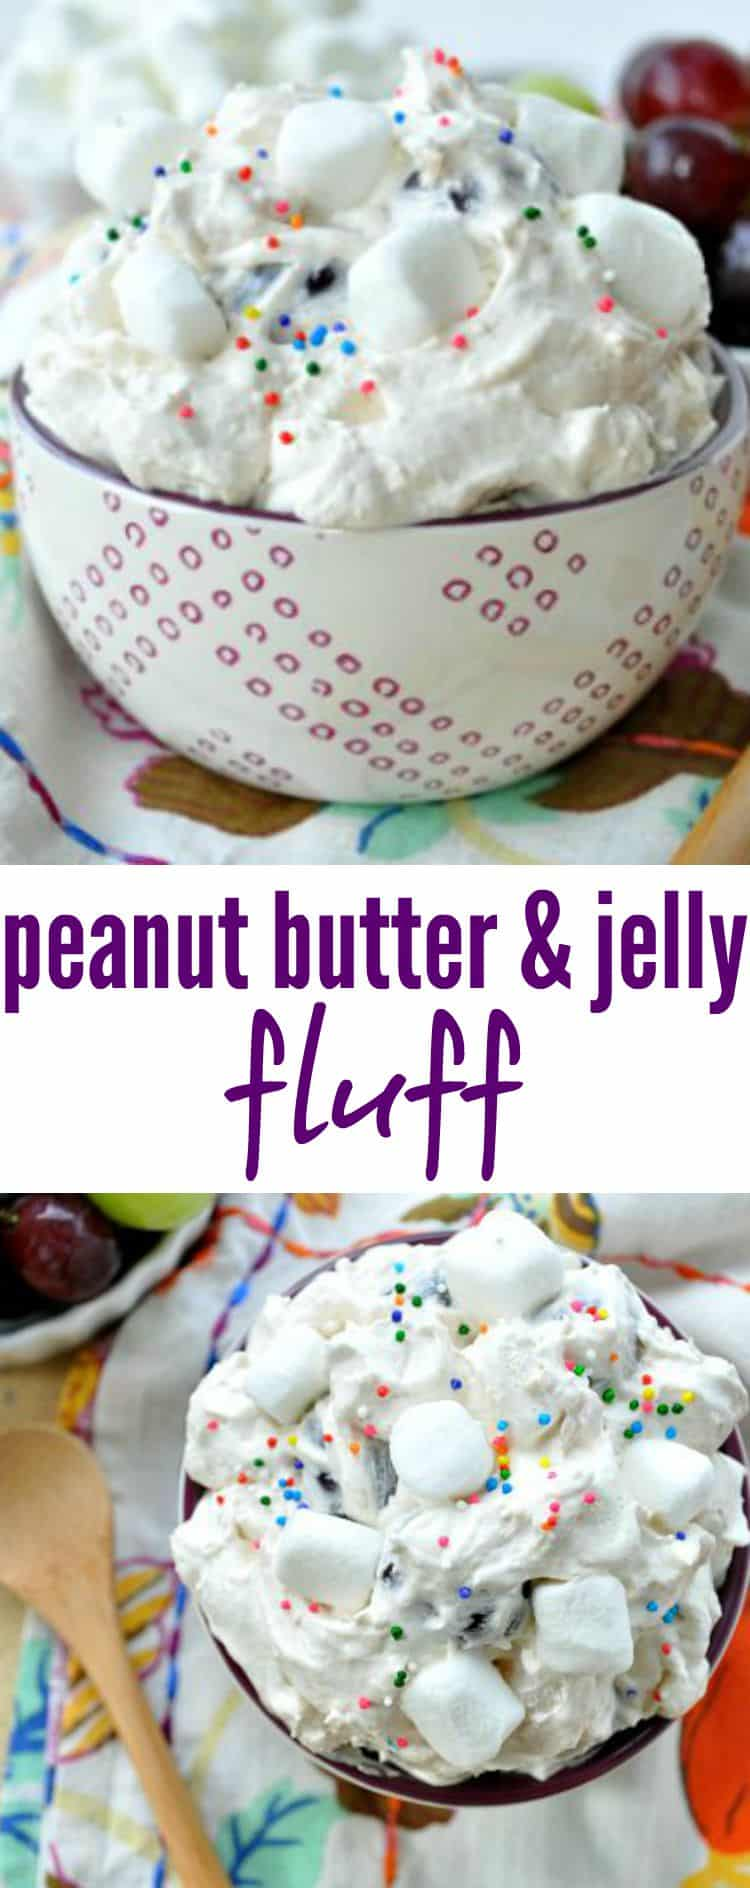 Peanut Butter & Jelly Fluff